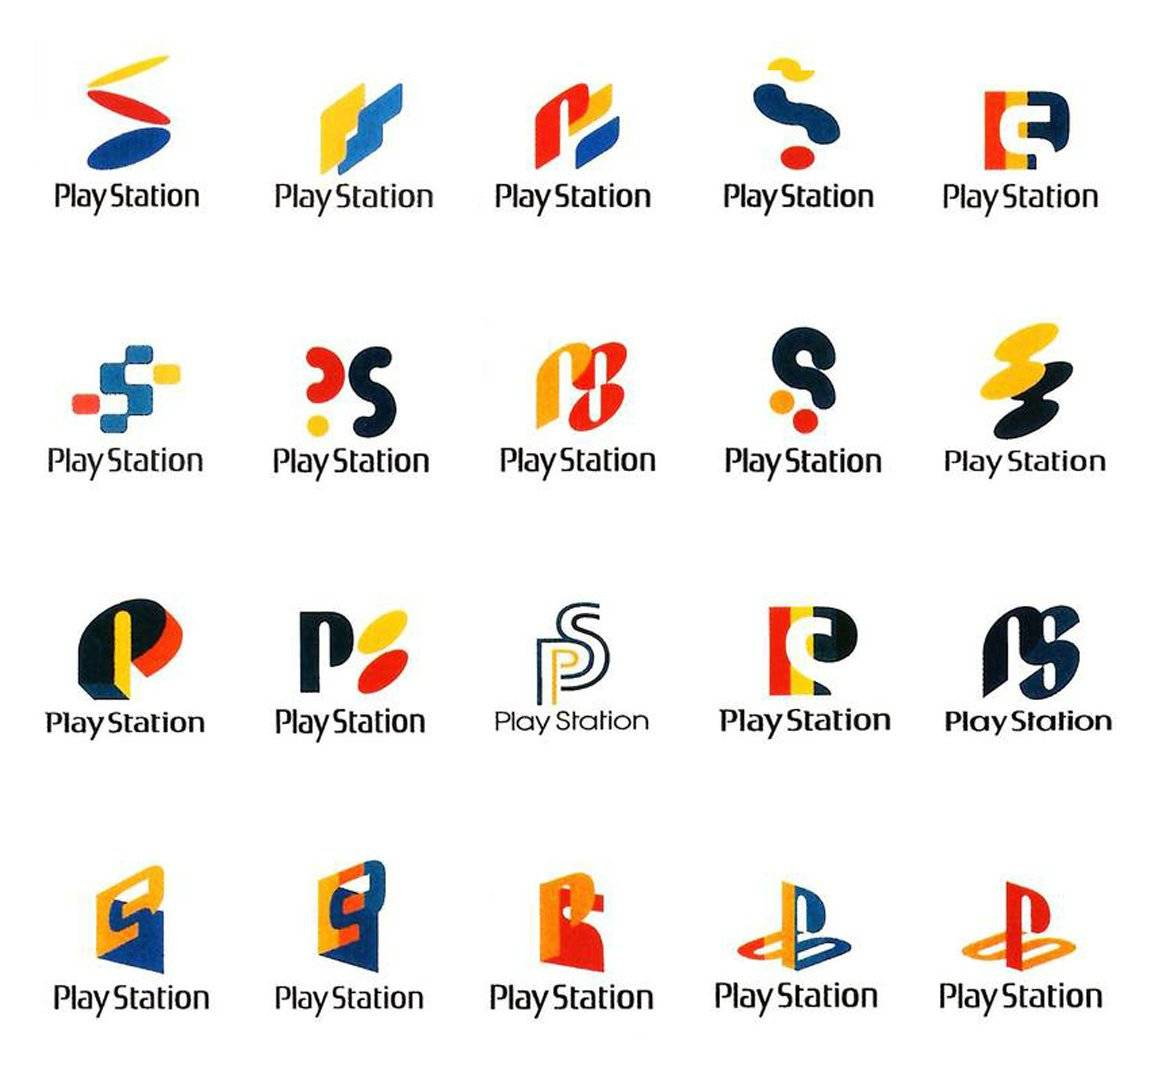 Sony Playstation 1 Logo Design Ideas, Concepts and WTF